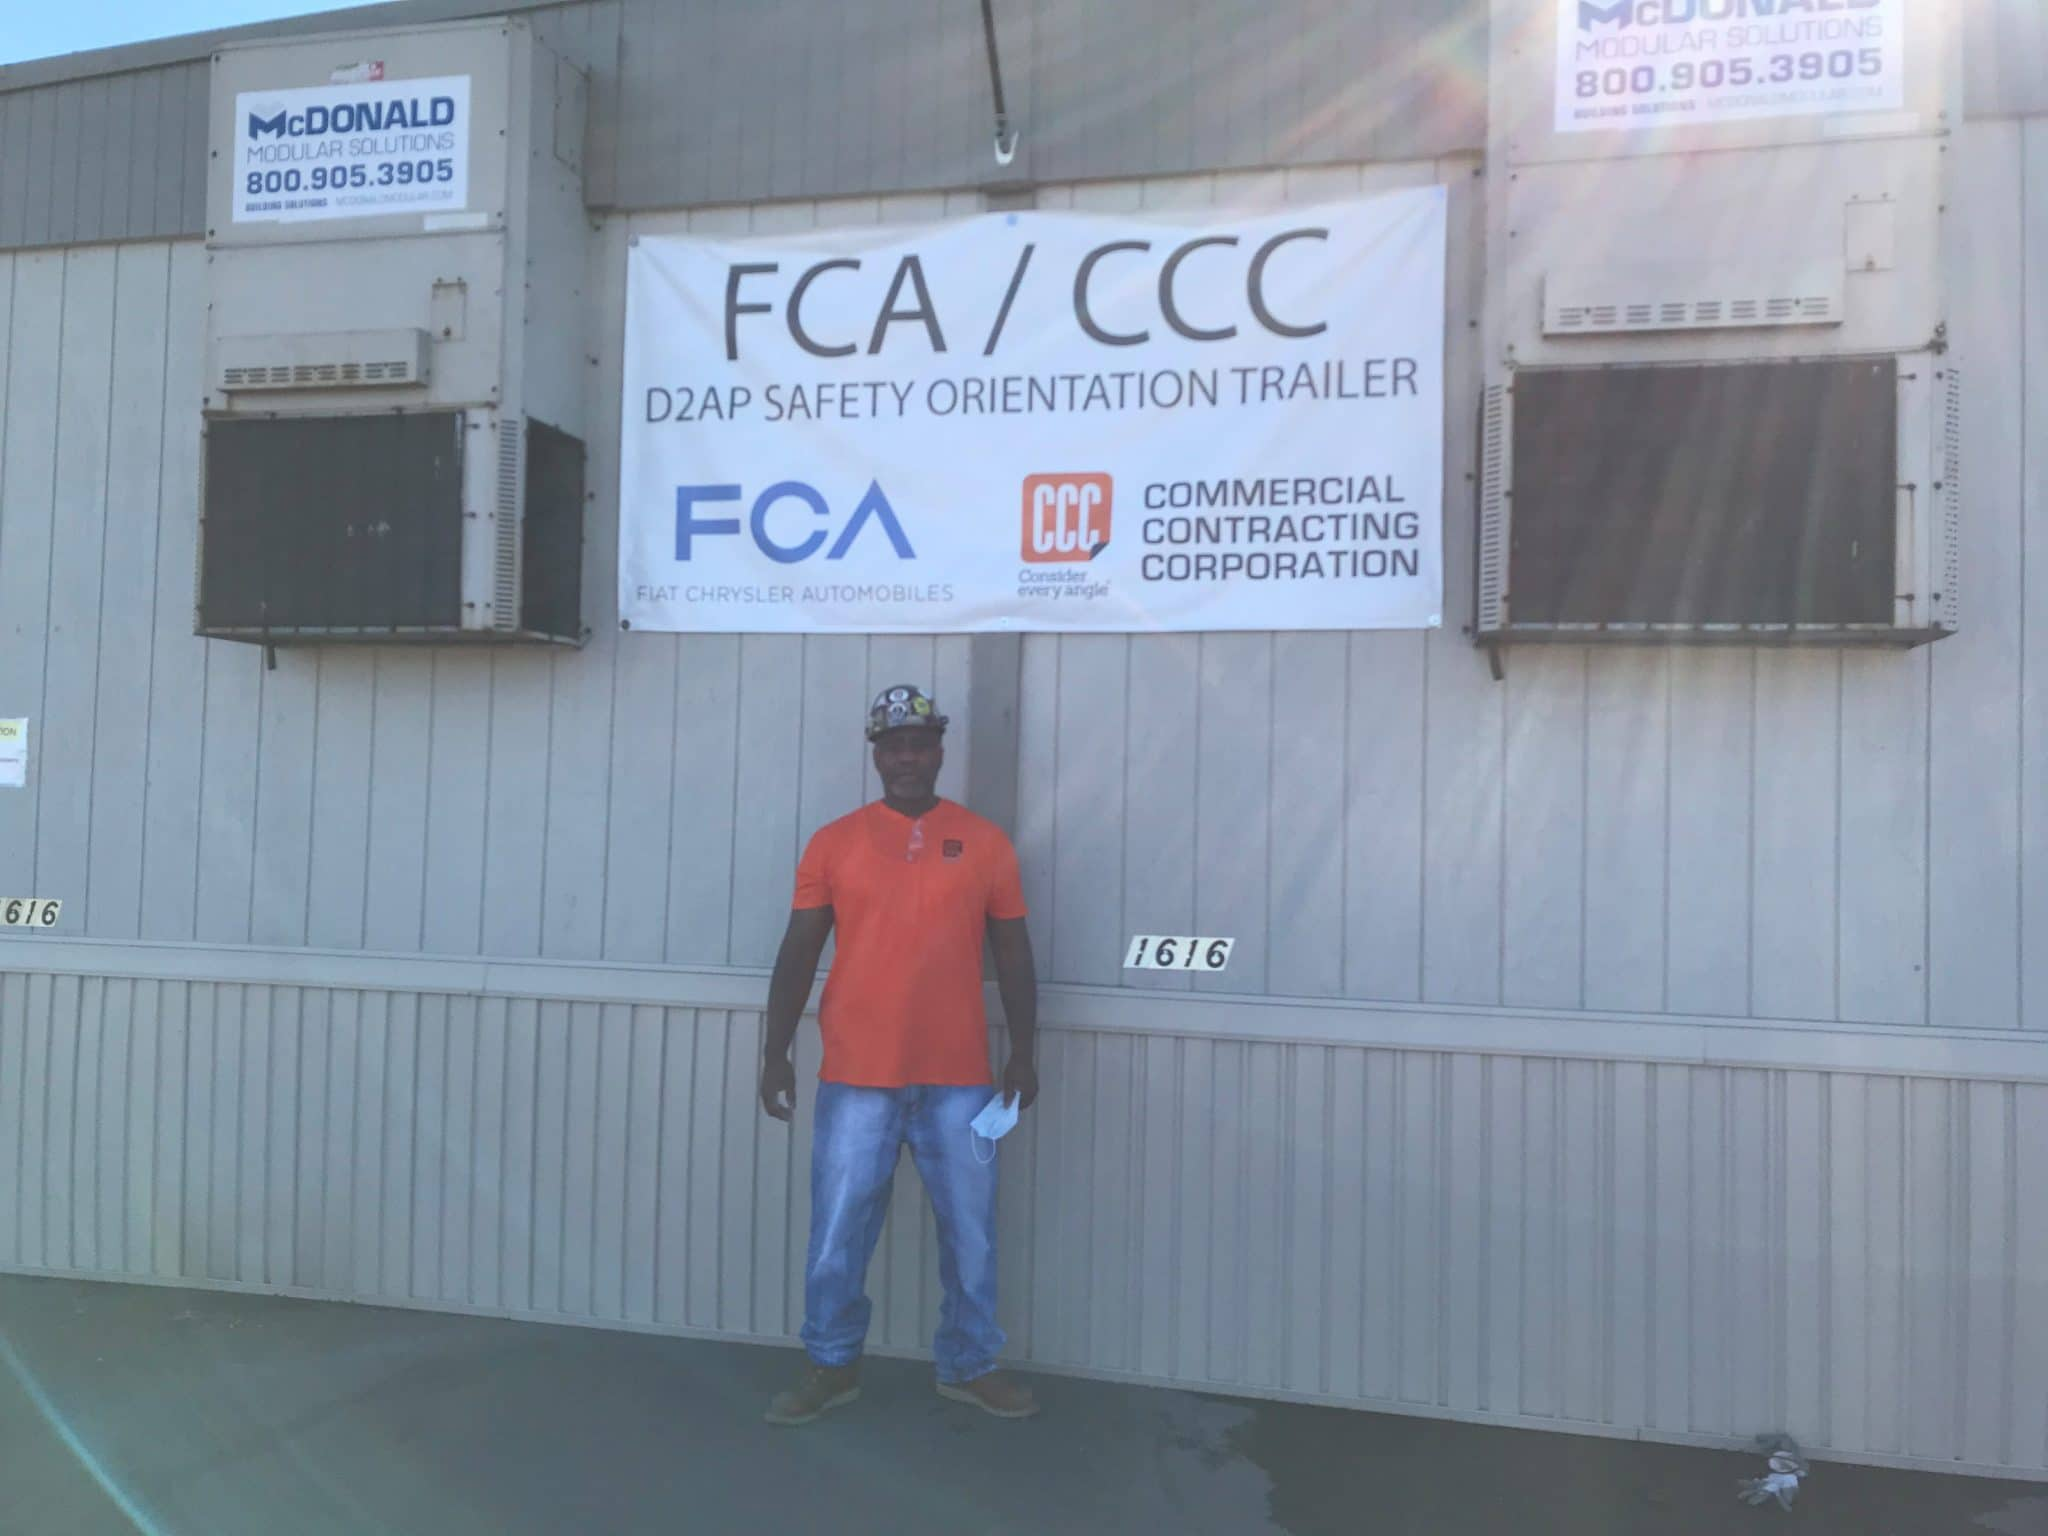 man in jeans and orange shirt below FCA/CCC sign